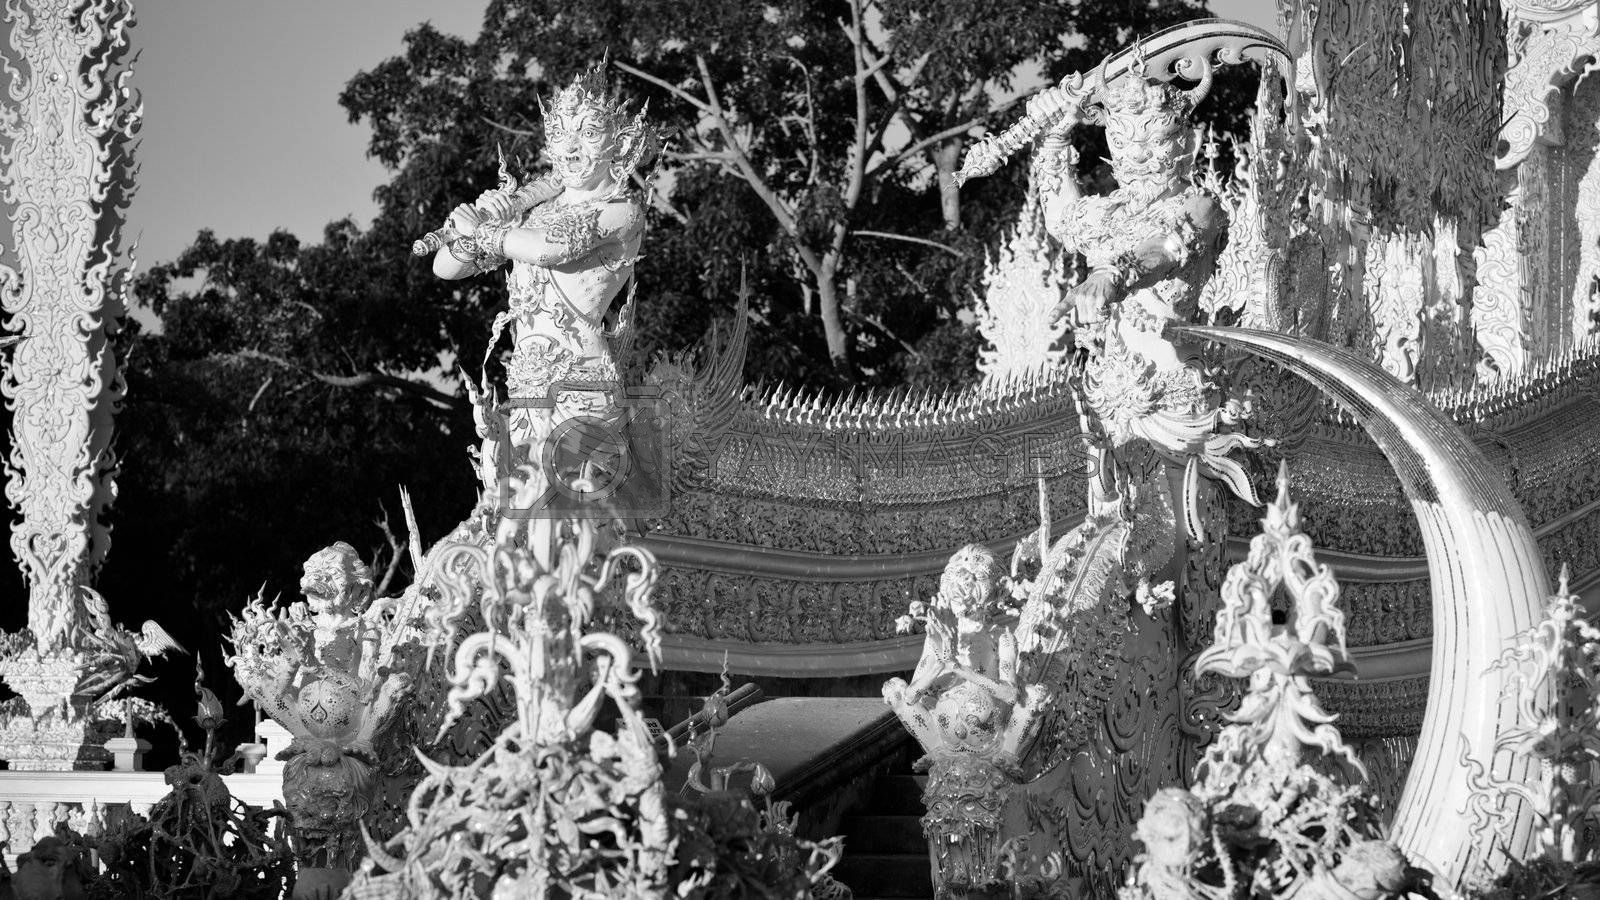 Statues of mythological guardians in white temple Wat Rong Khun.  Wat Rong Khun is a contemporary unconventional Buddhist temple in Chiang Rai, Chiangmai province, Thailand. It is designed in white color.